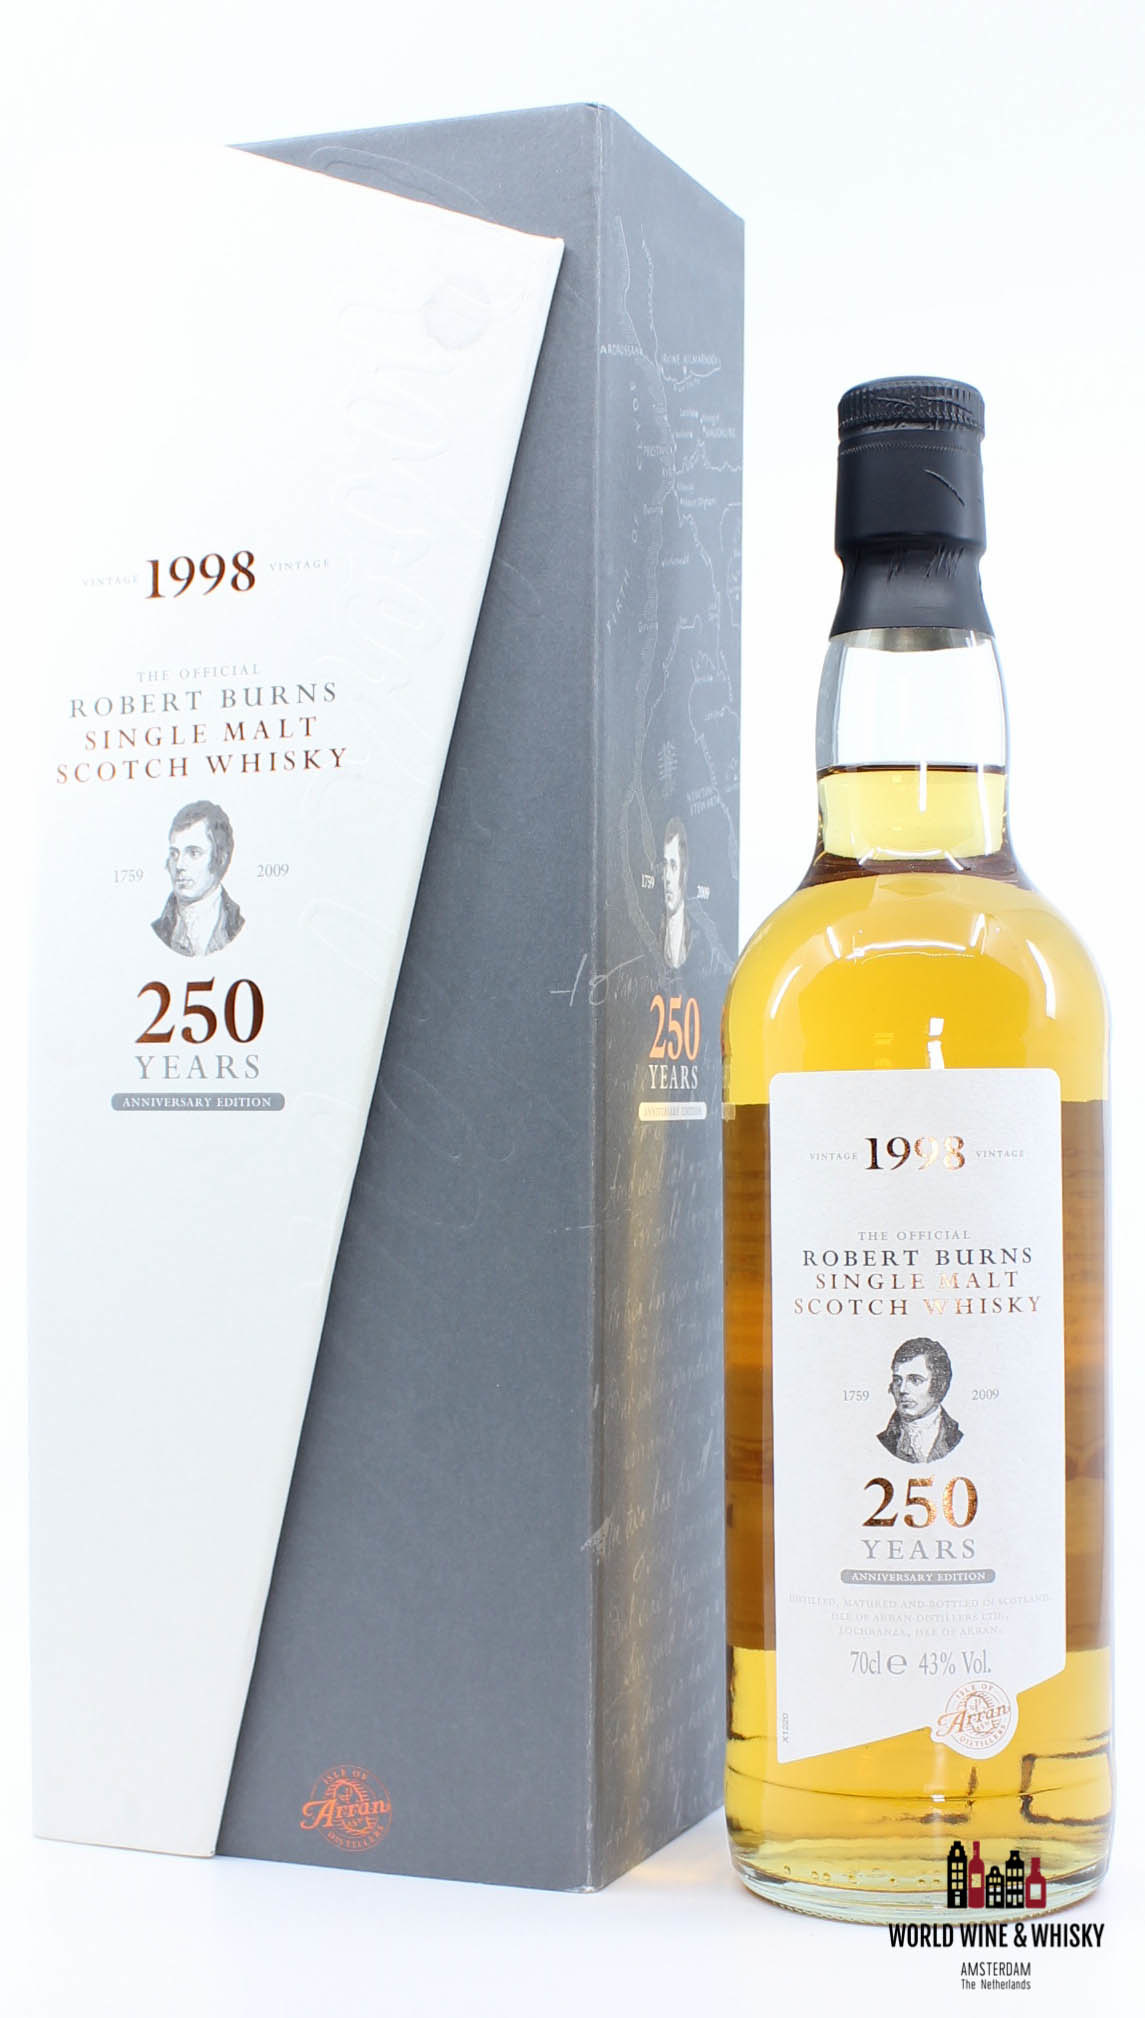 Arran Arran 10 Years Old 1998 2008 Robert Burns - 250 Years Anniversary Edition 43%